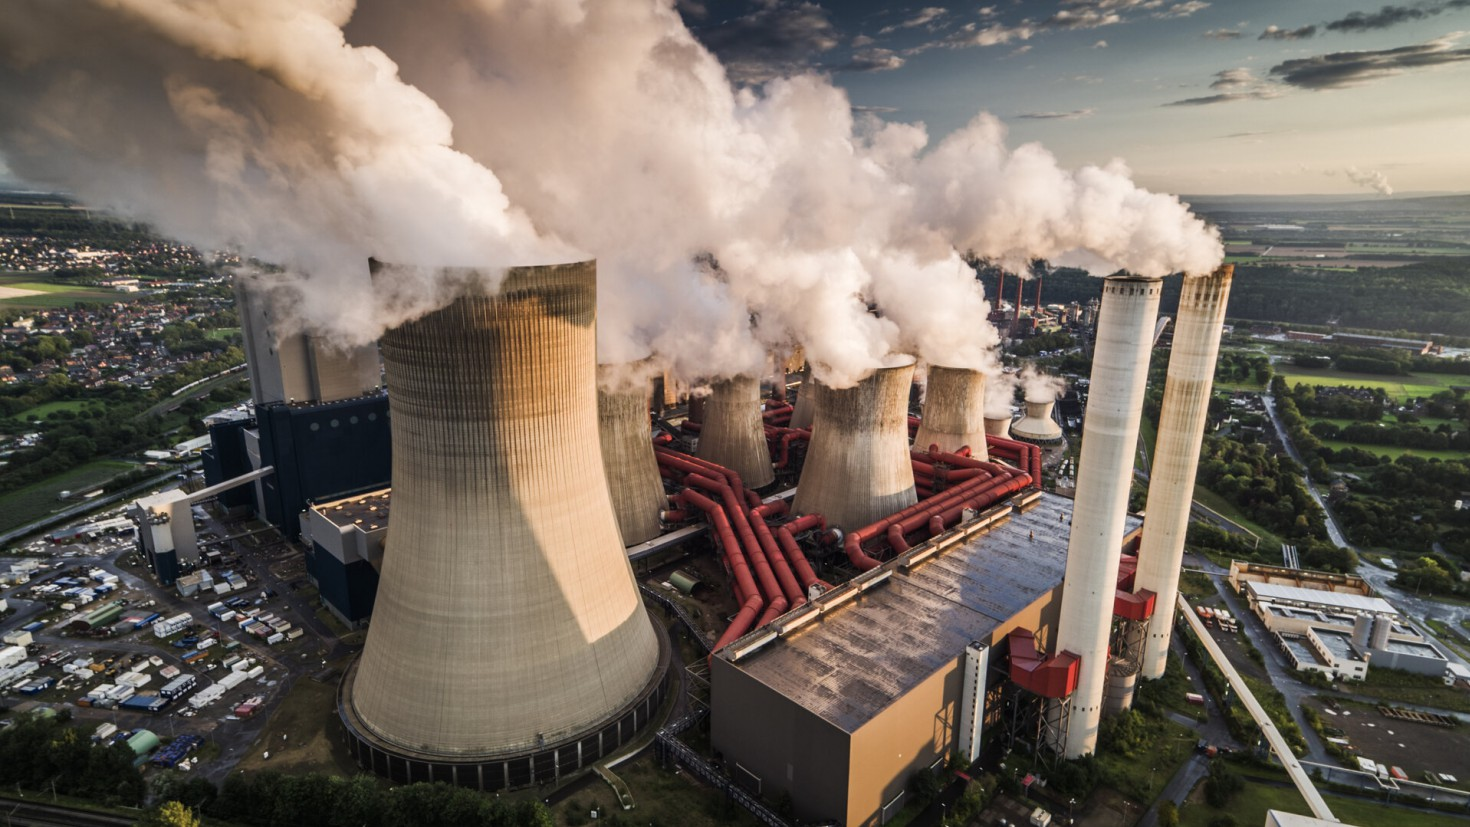 The restrictions introduced to stop the Coronavirus pandemic have in many places led to a decrease in electricity consumption. Many countries use coal-fired power plants, such as this one in germany, to produce electricity, which cause high co2 emissions. Photo by SCHROPTSCHOP / GETTY IMAGES.